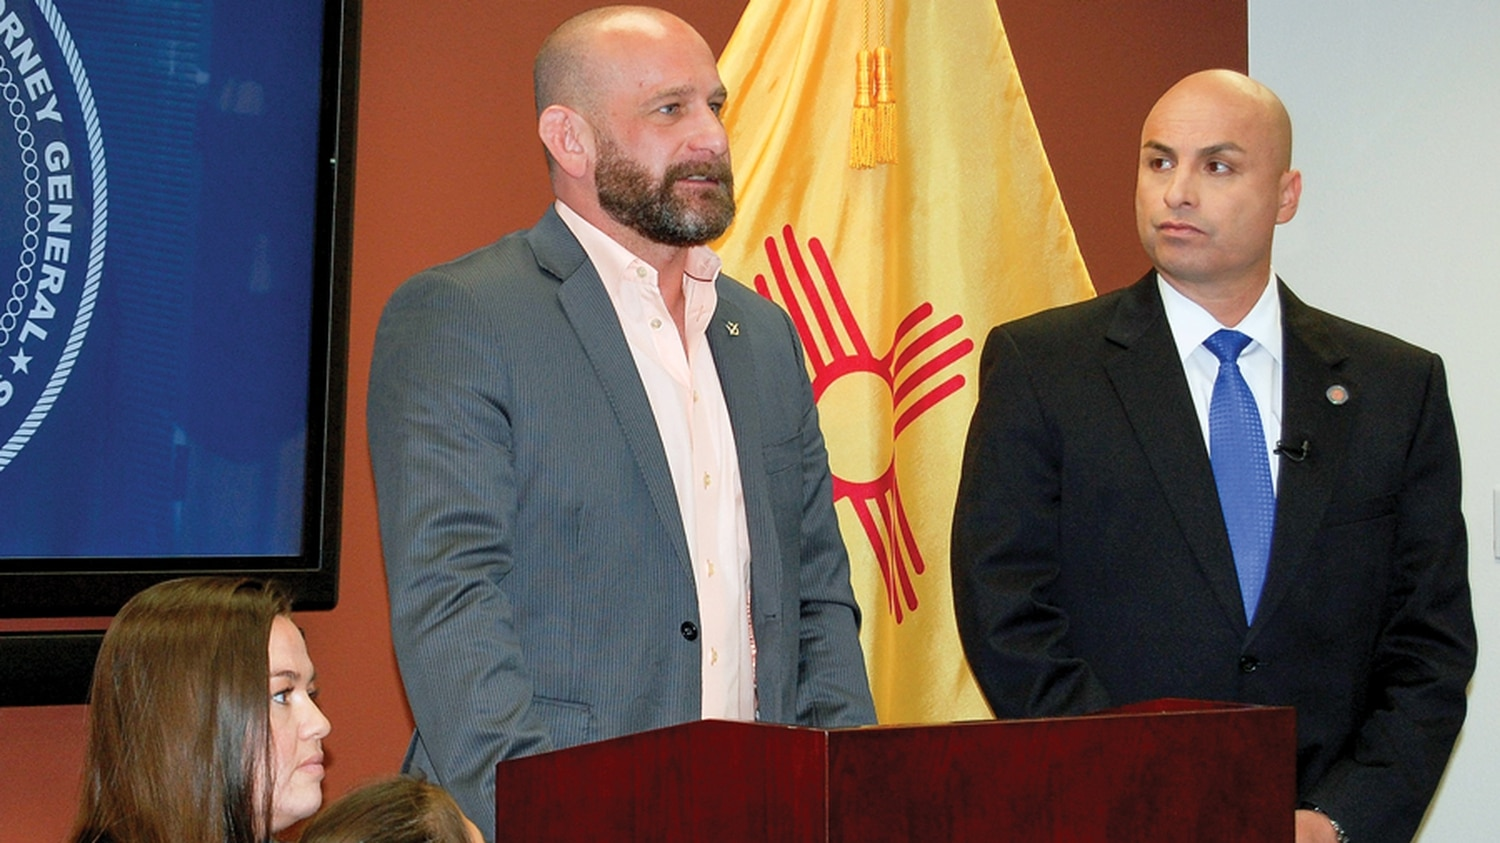 MMA trainer Greg Jackson, left, attended a recent news conference with state Attorney General Hector Balderas—a classic image-making event from the elected official.